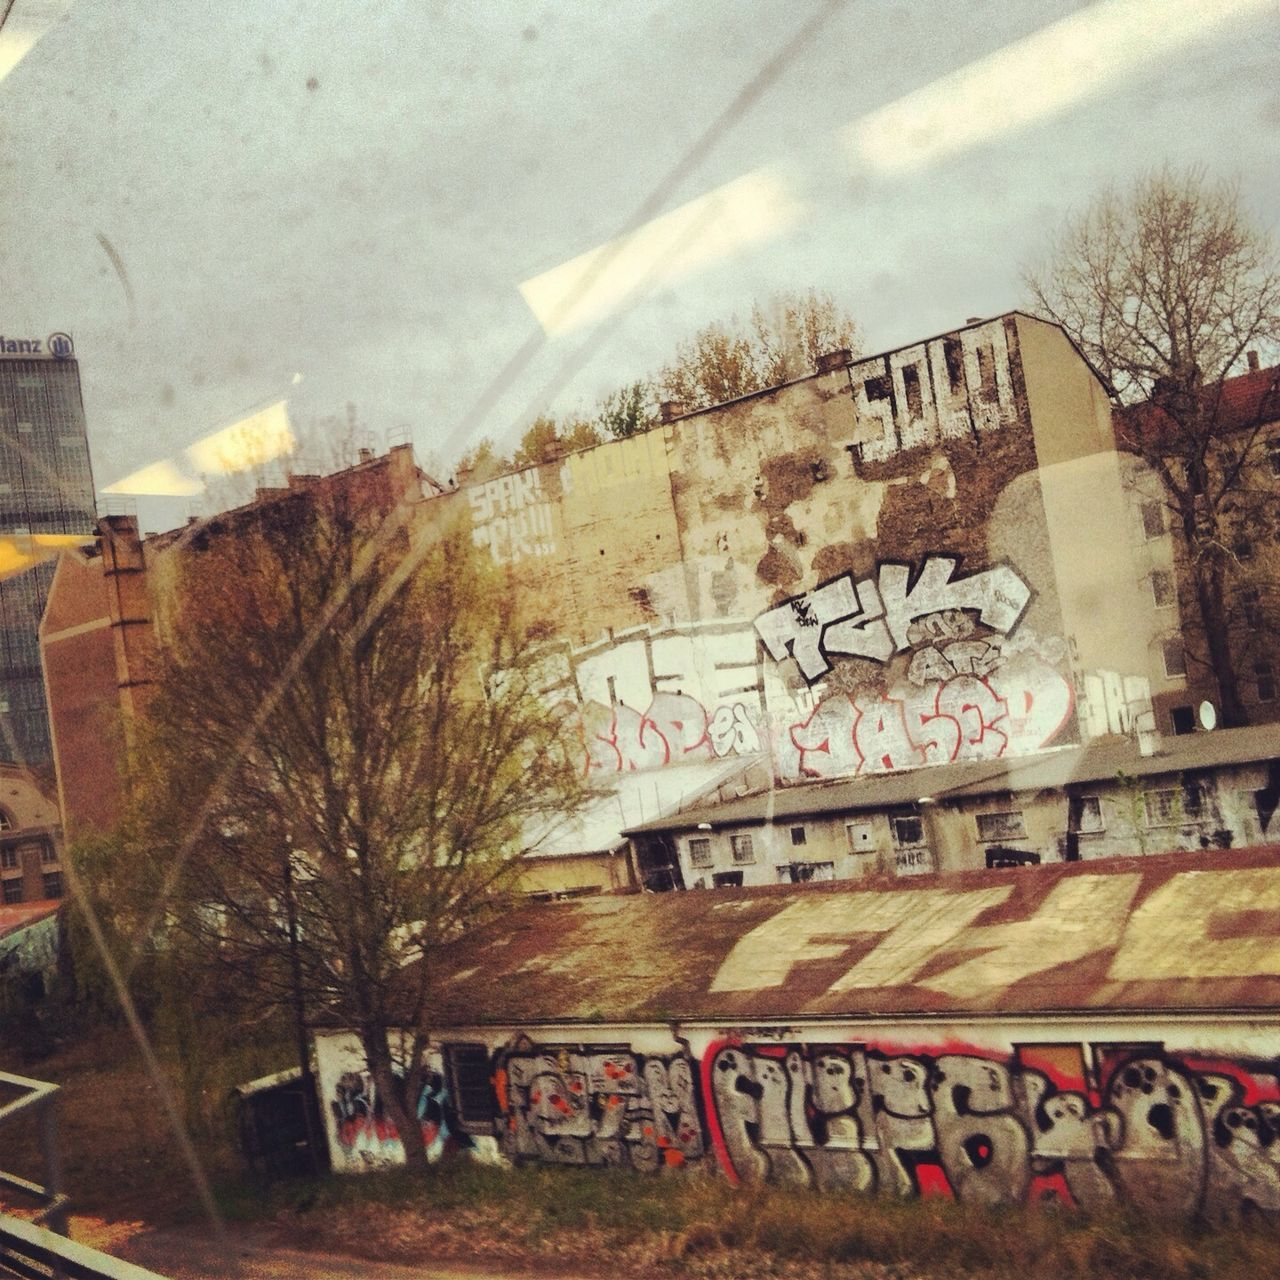 graffiti, text, architecture, communication, built structure, building exterior, day, no people, city, outdoors, tree, sky